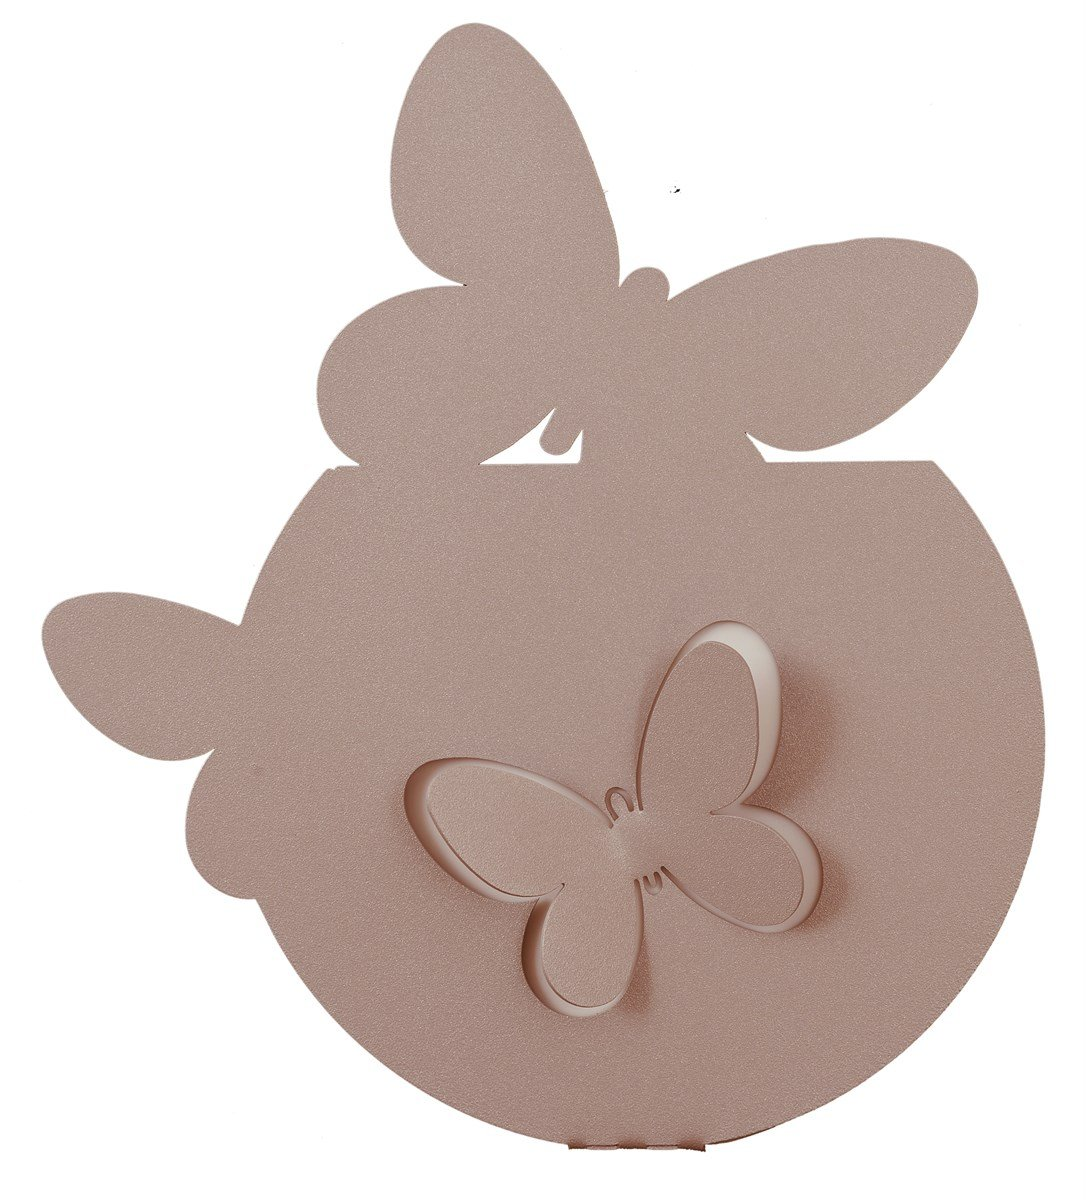 Umidificatore FARFALLE BUTTERFLY Colore SABBIA BEIGE Arti U0026 Mestieri:  Amazon.it: Casa E Cucina